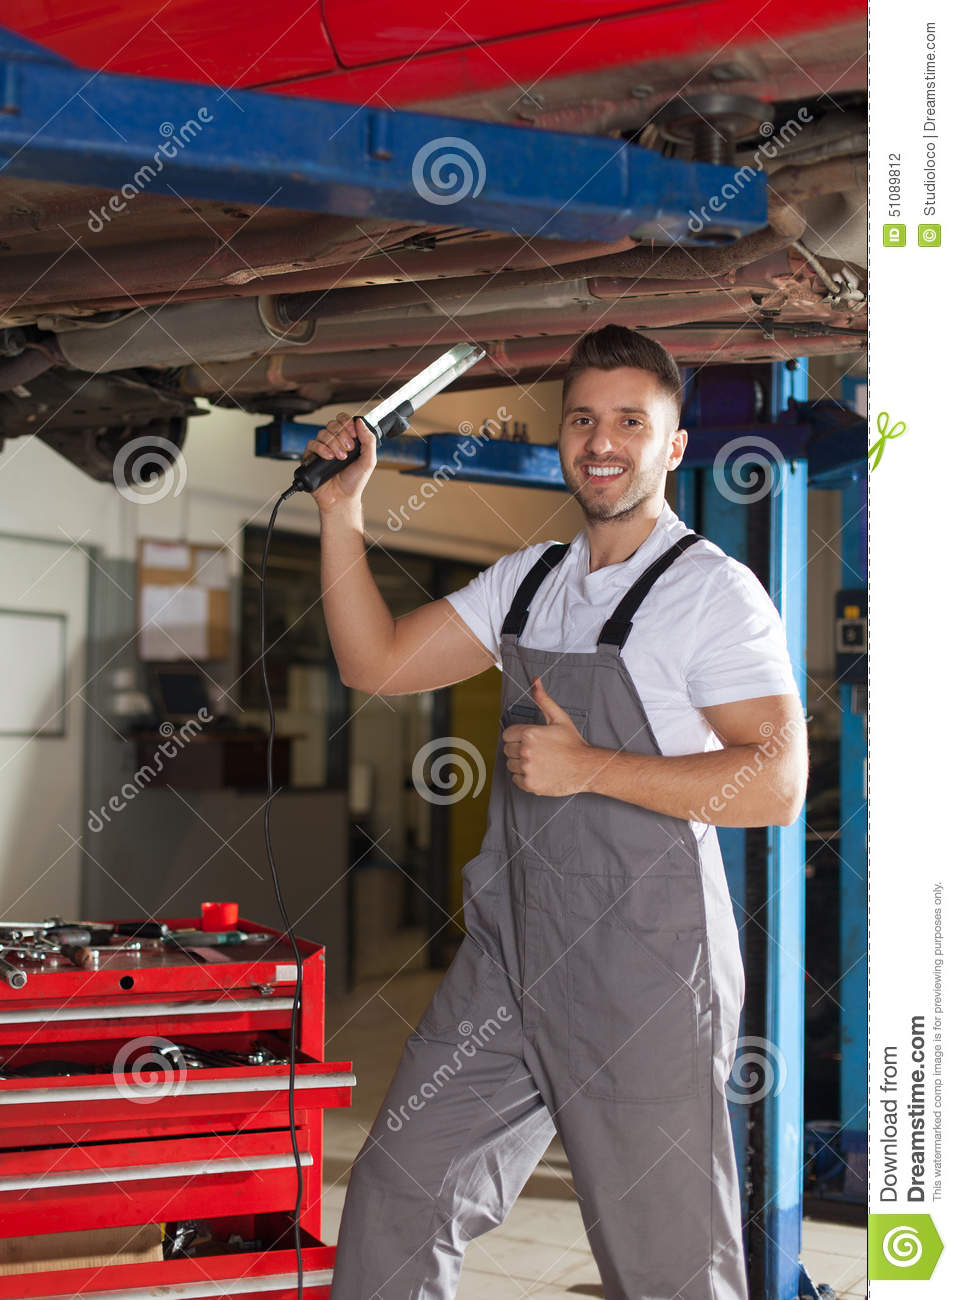 car chassis inspection approved stock photo image of auto machinist 51089812. Black Bedroom Furniture Sets. Home Design Ideas